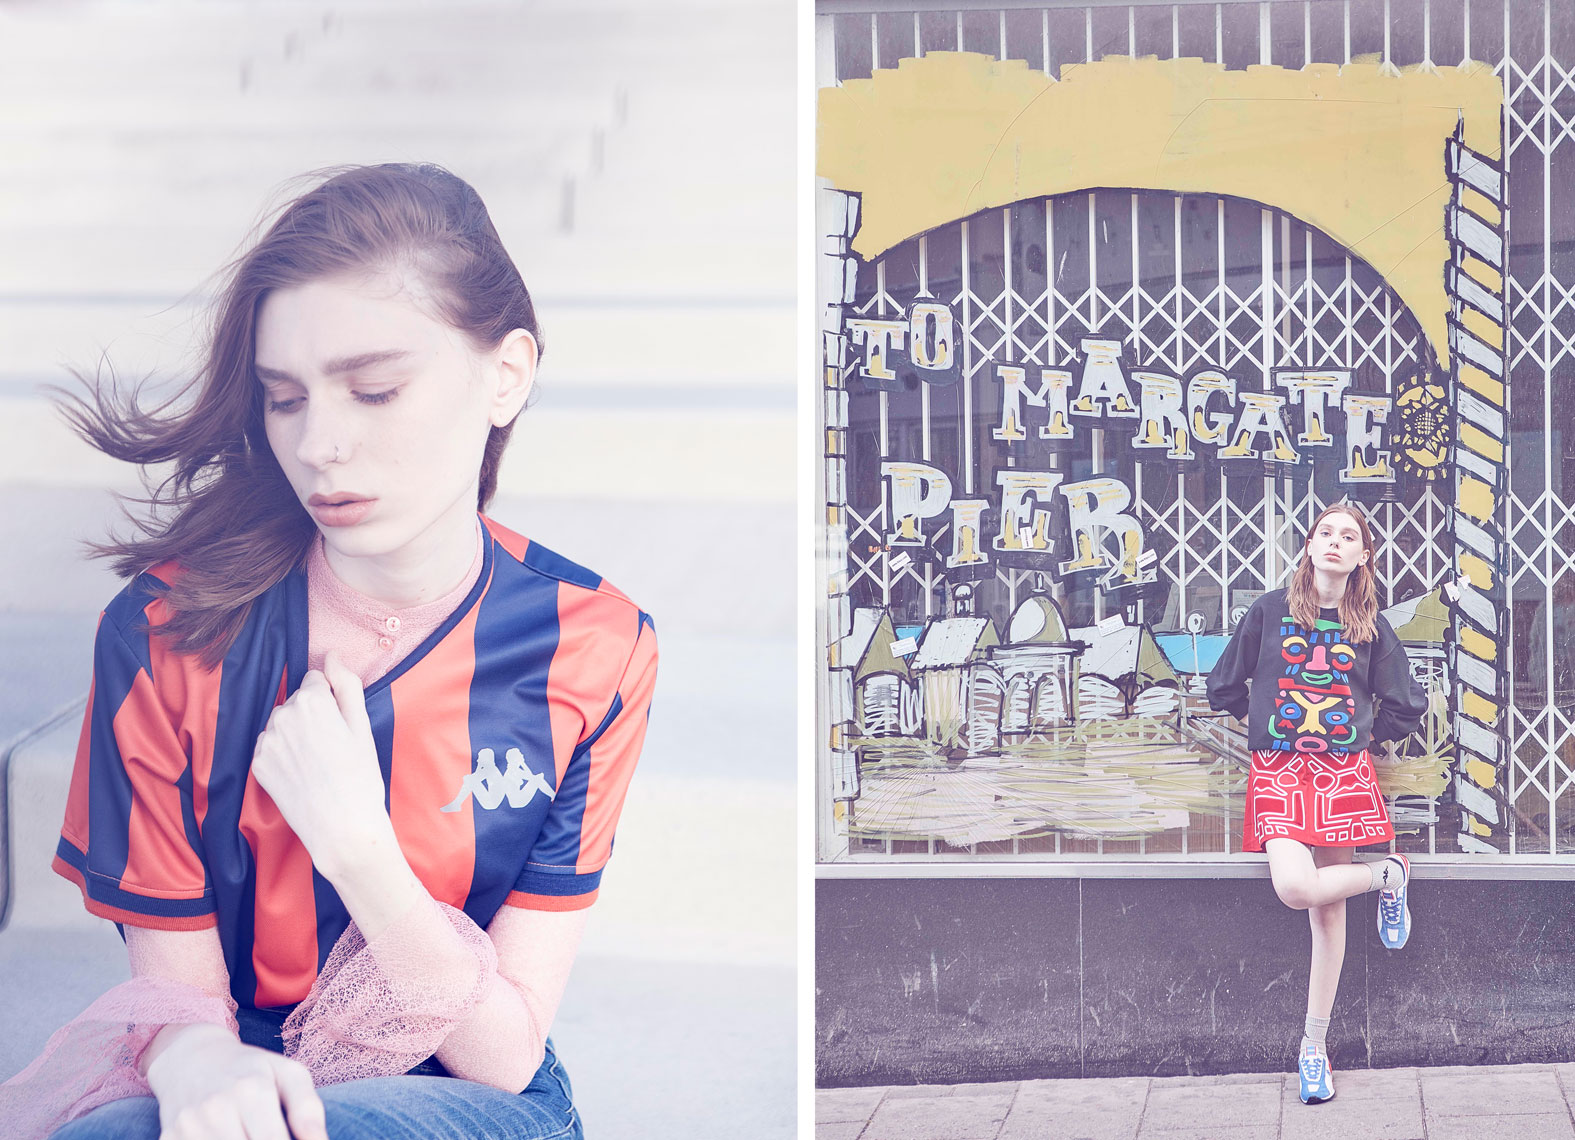 issie-gibbons-fashion-stylist-margate-stories-collective-kappa-nicola-brindle